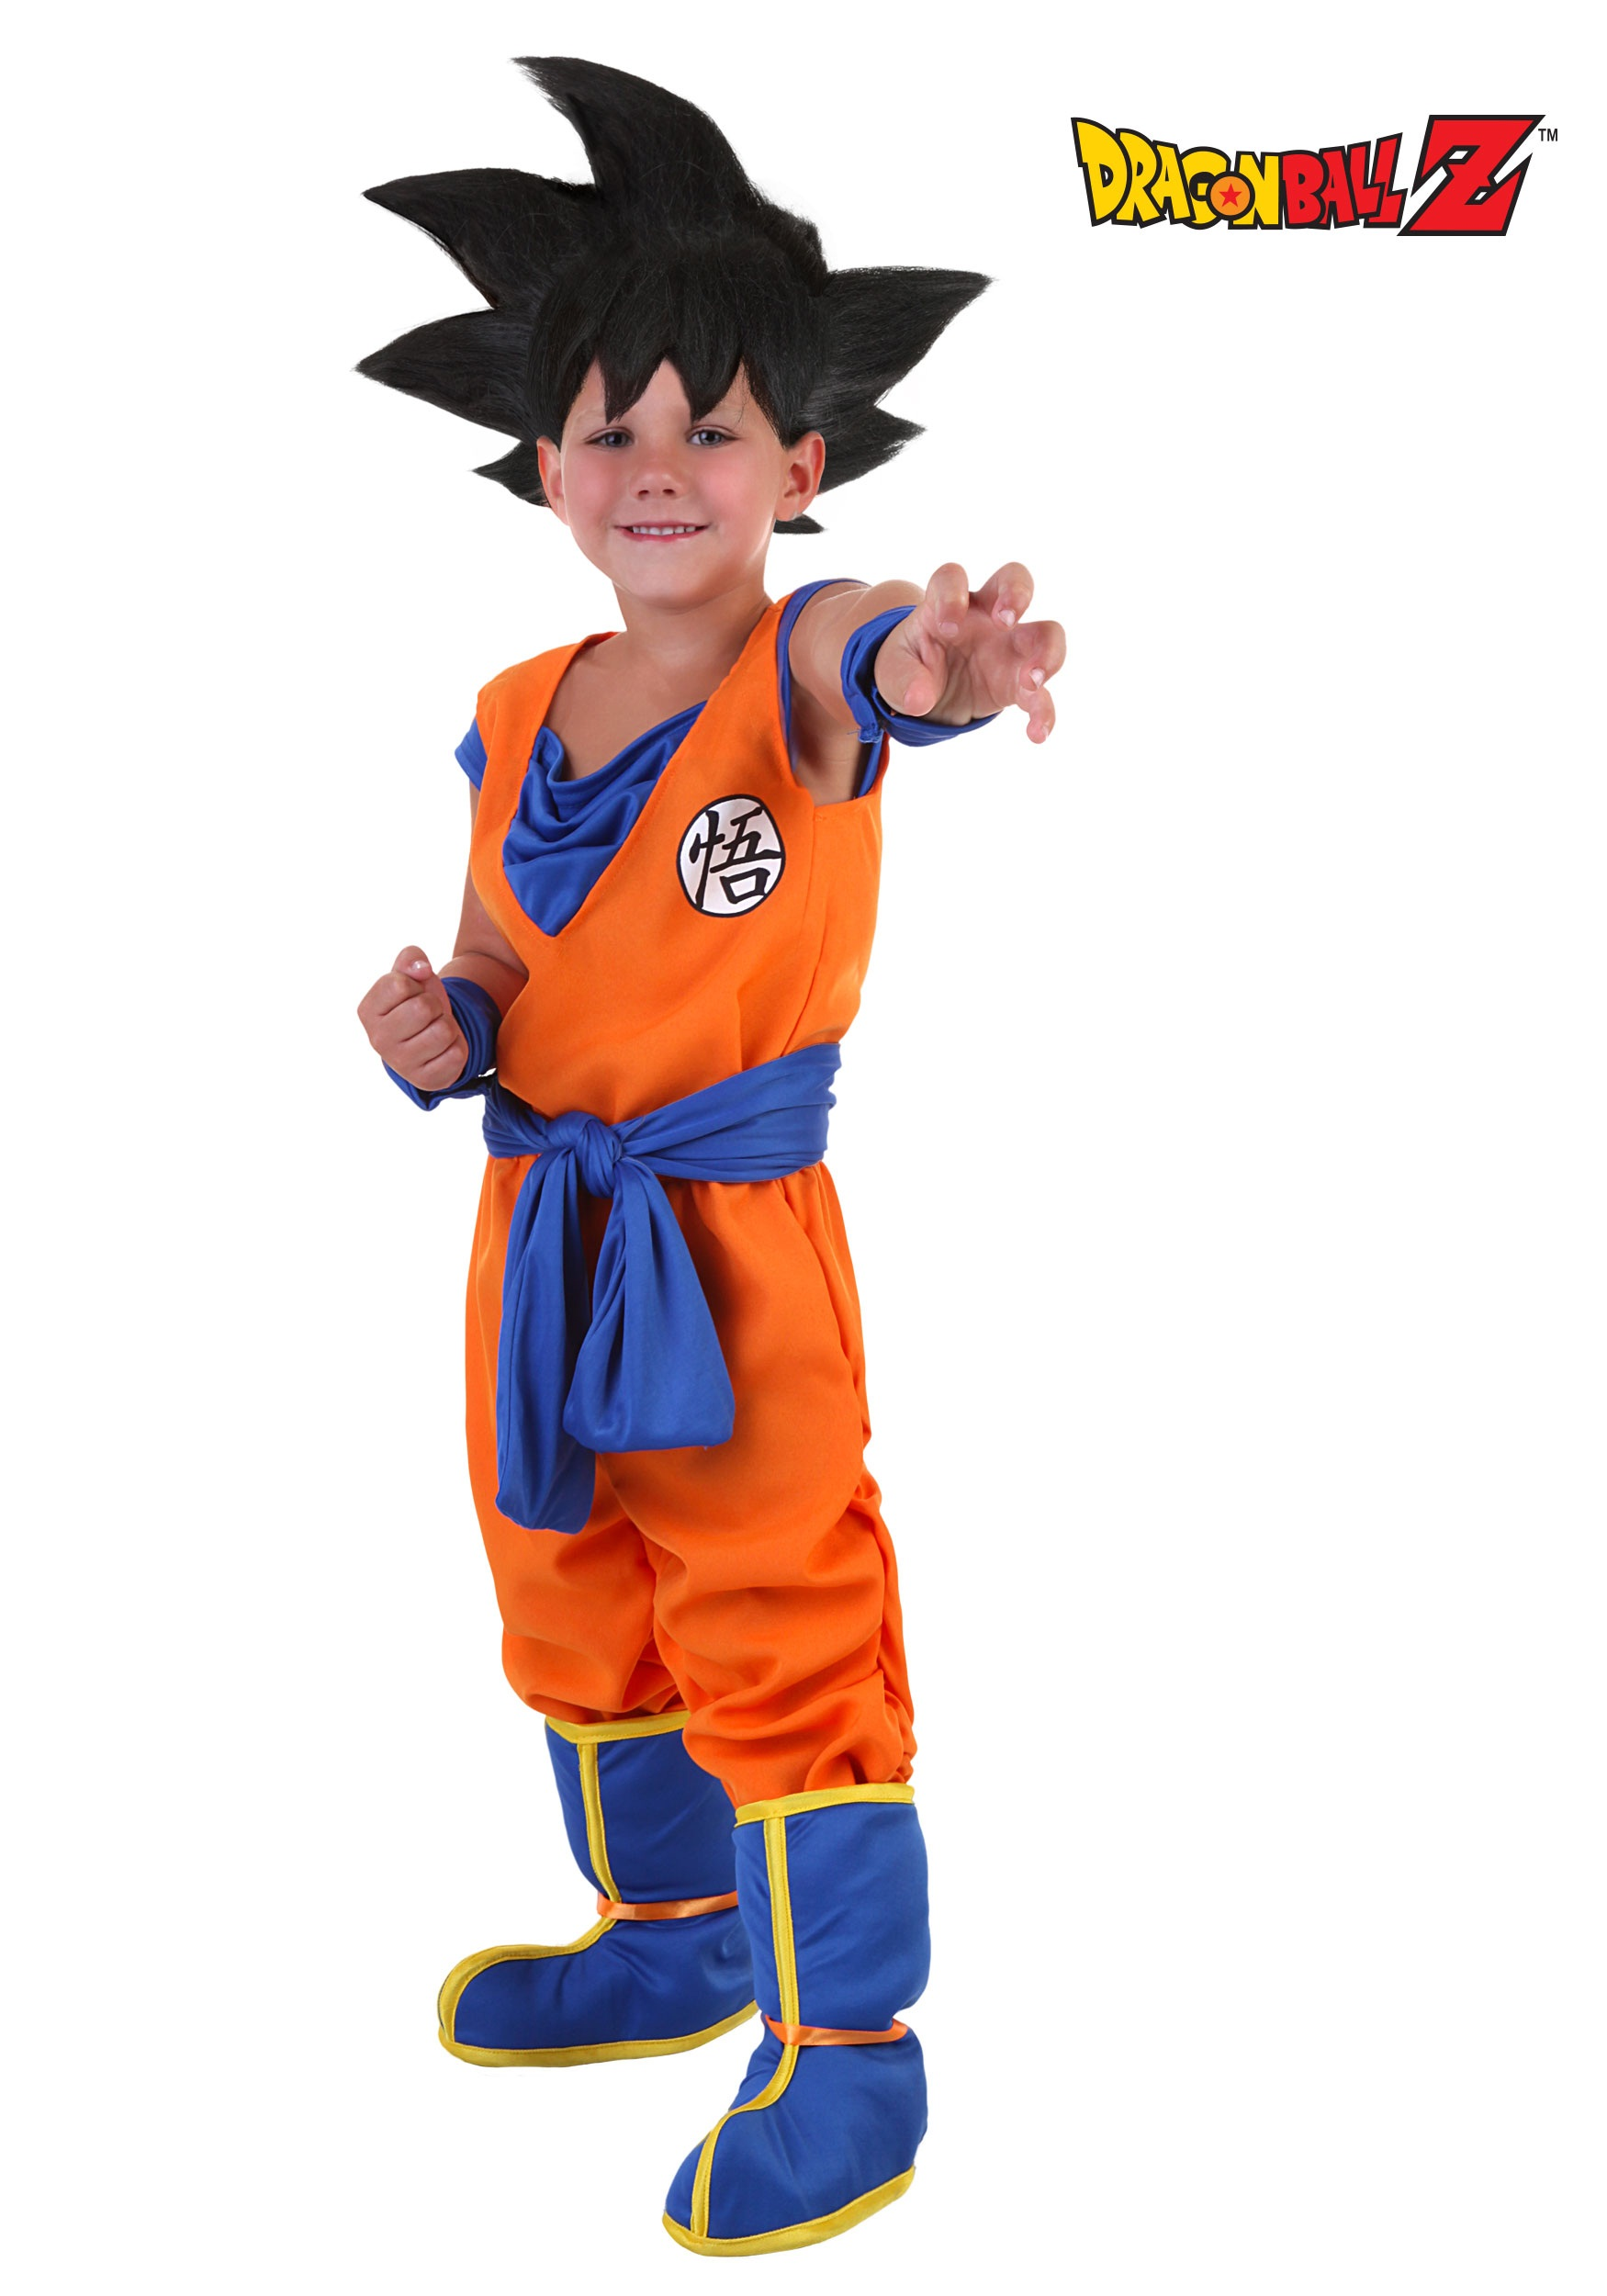 Dragon Ball z Halloween Costumes For Adults Dragon Ball z Costumes